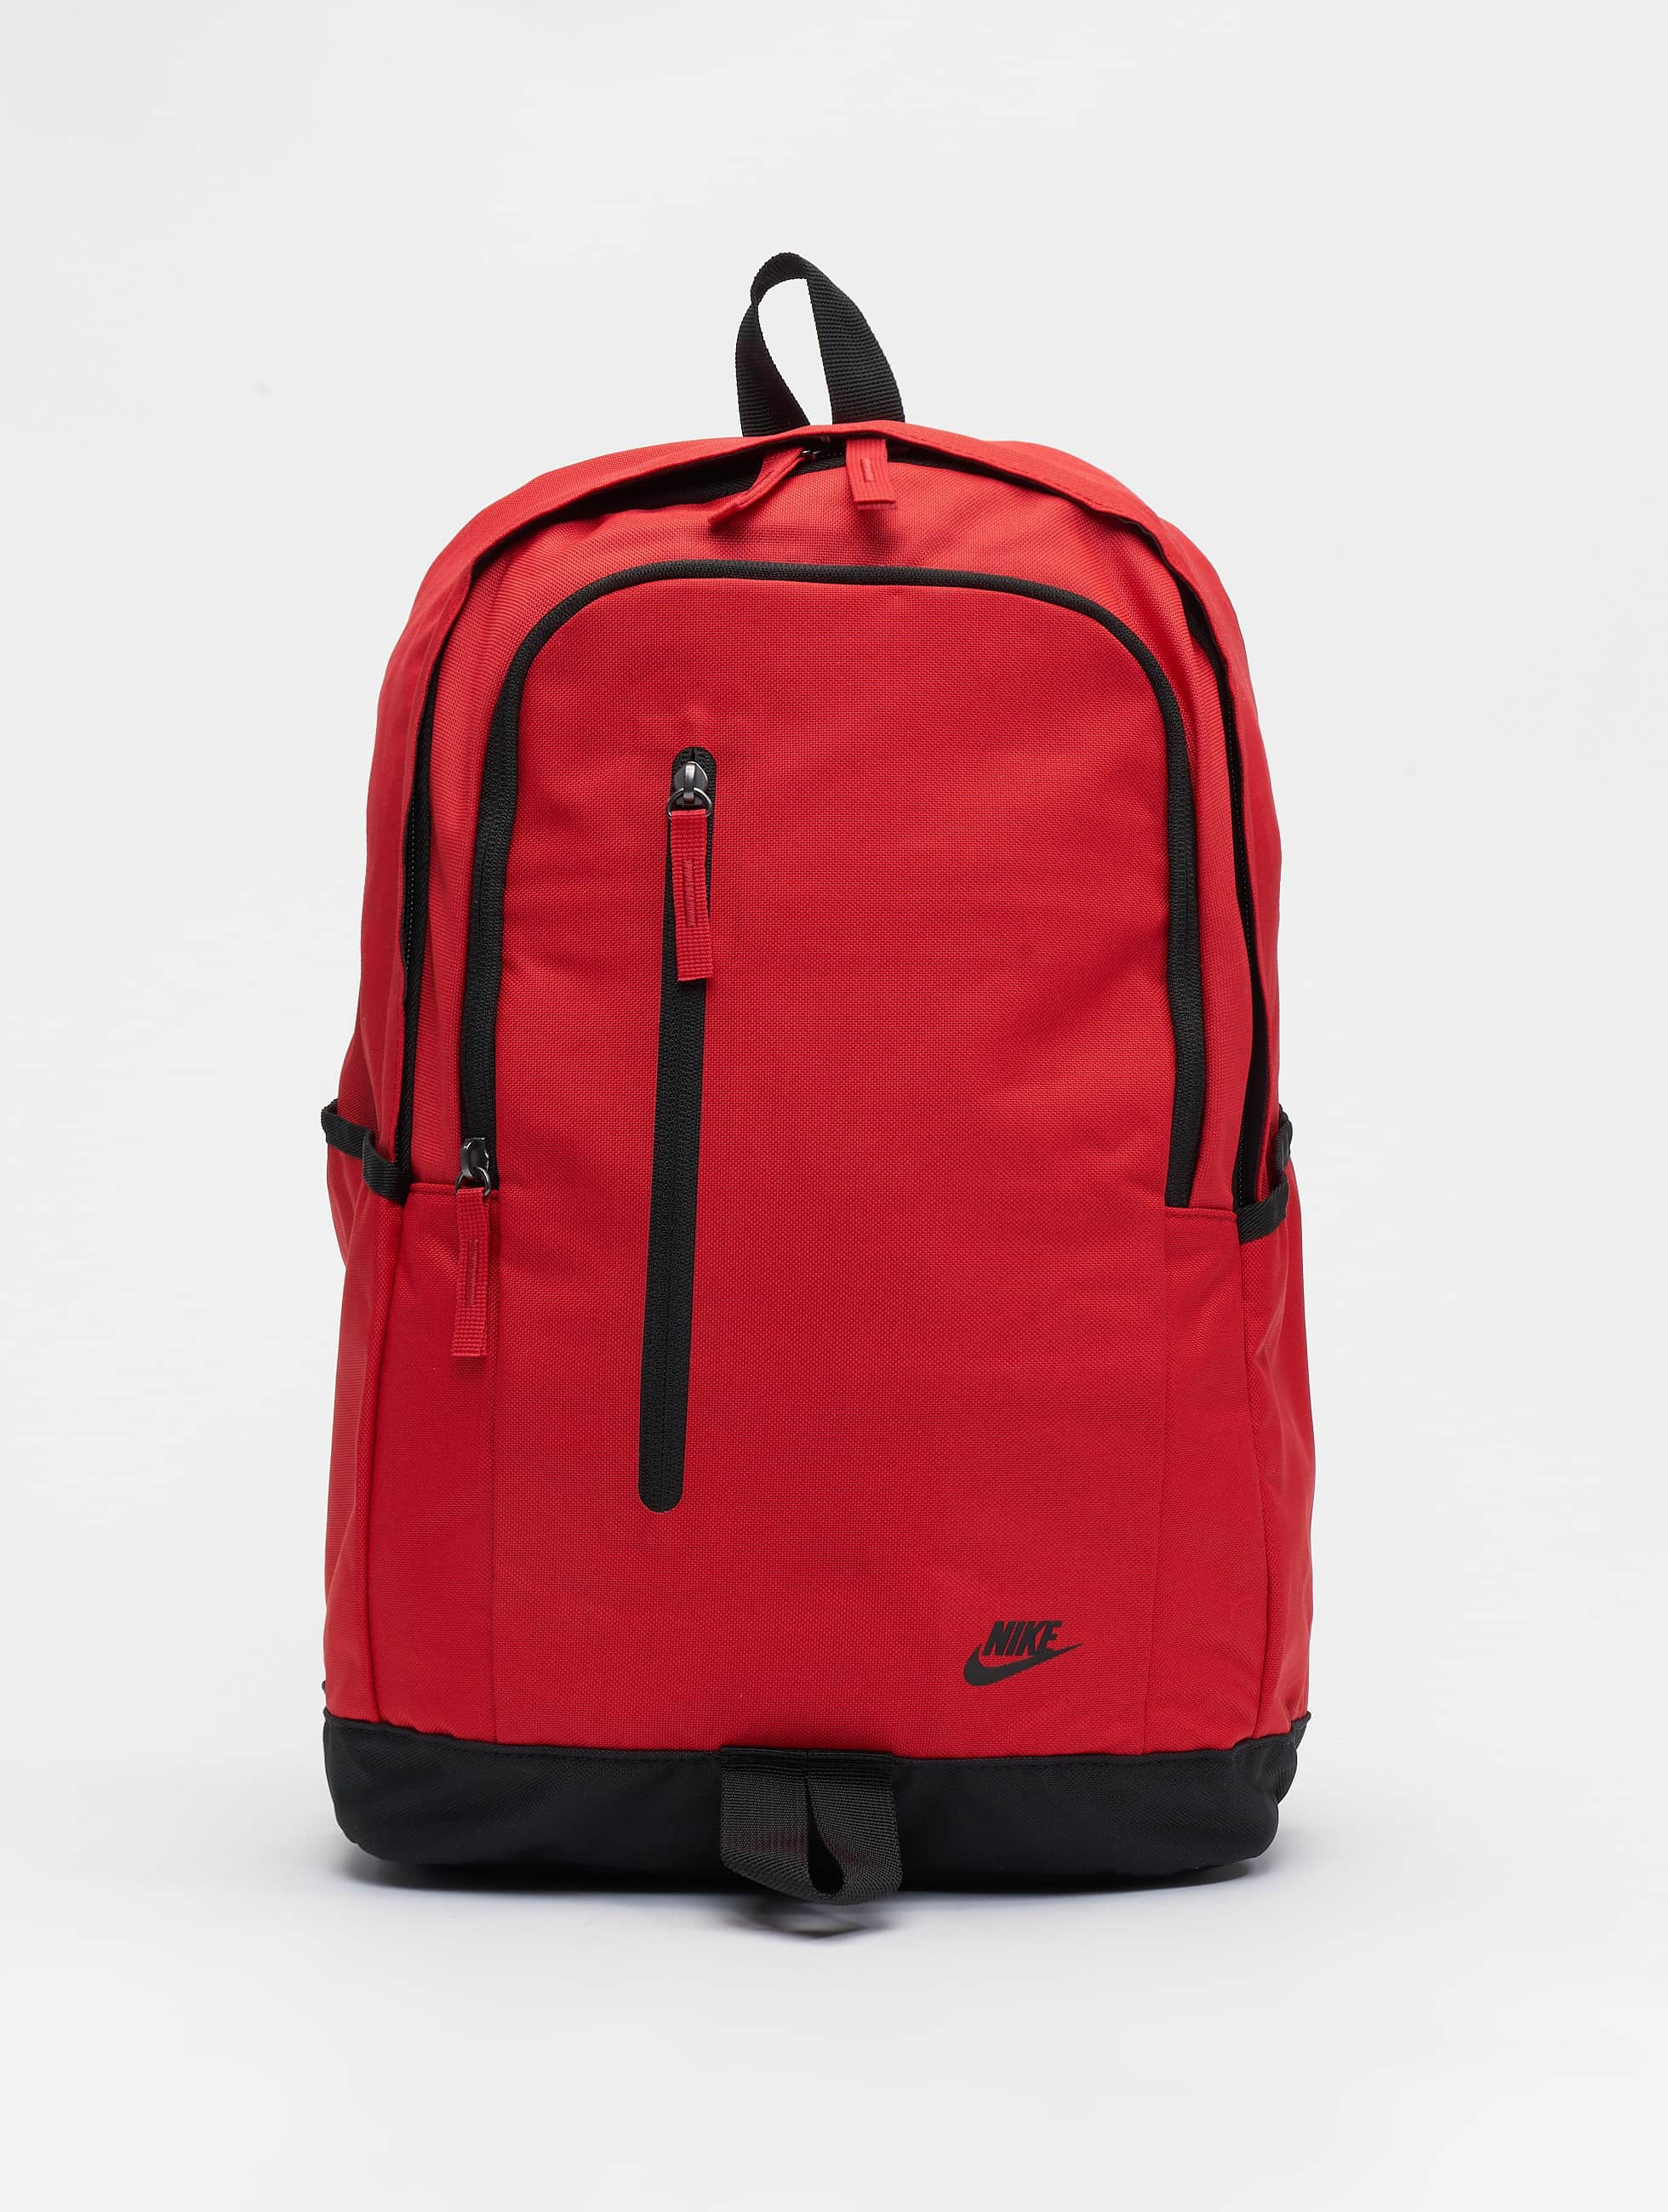 446844780b0 Nike SB Accessoires / rugzak All Access Soleday S in rood 669393